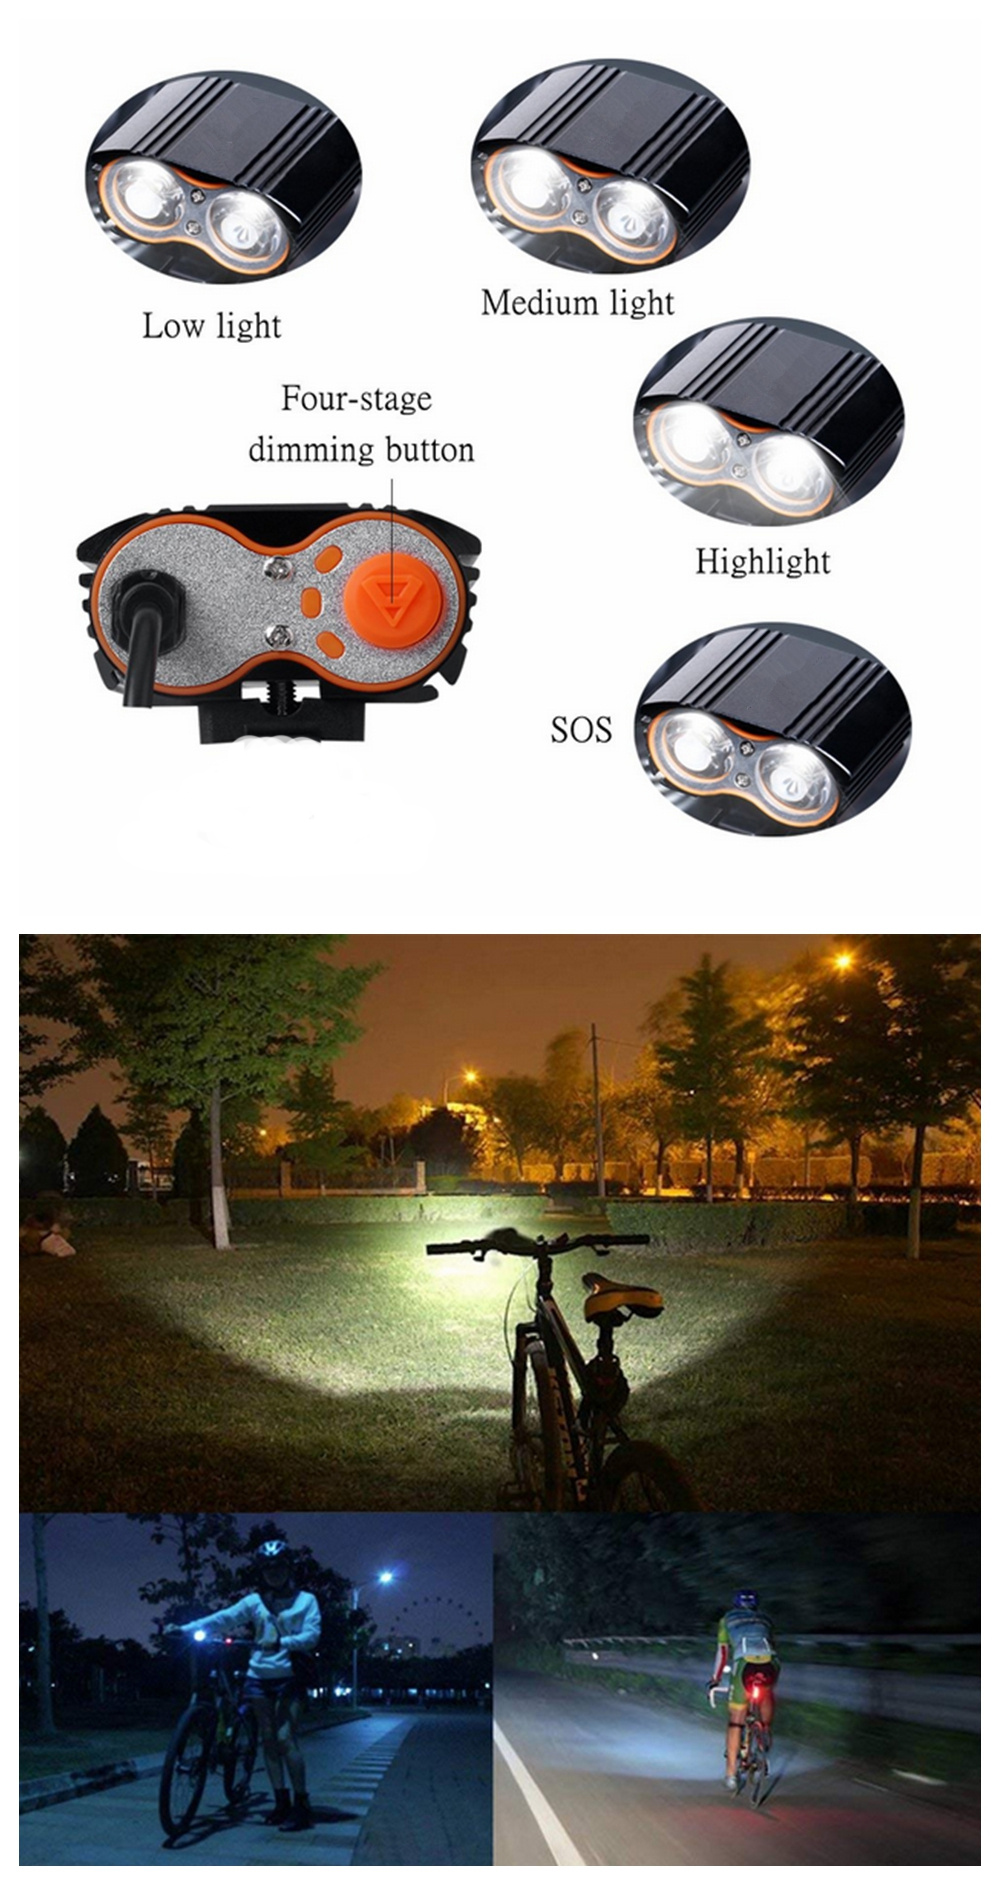 ZHISHUNJIA K2D USB Interface of 360 Degree Rotating T6 Strong Light Bicycle Lamp- Black